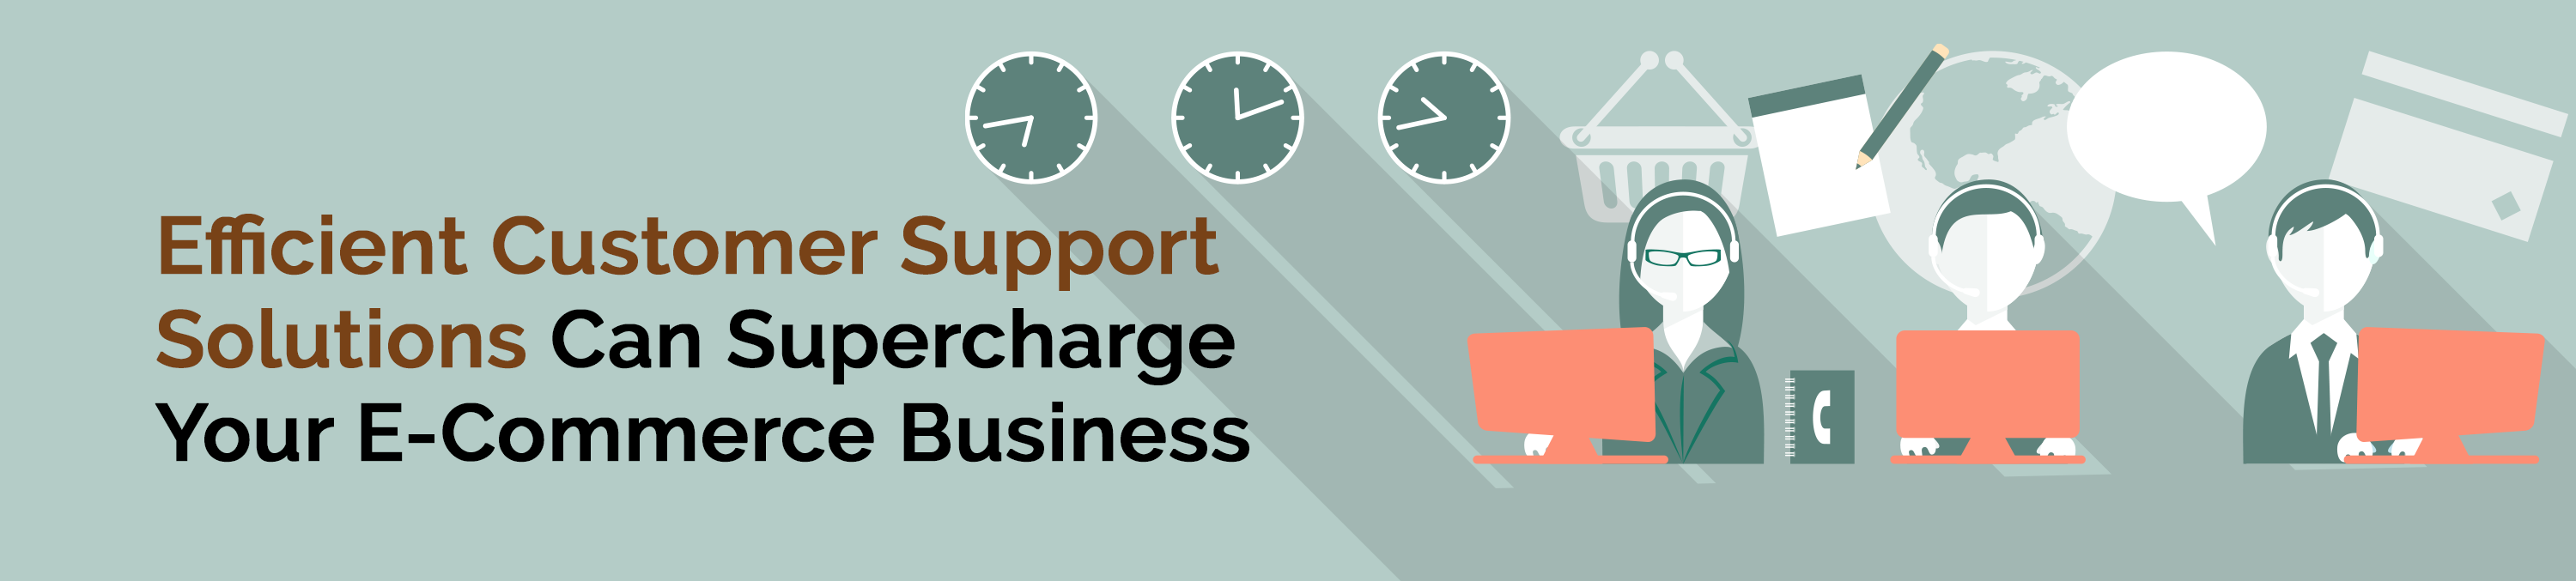 Efficient Customer Support Solutions Can Supercharge Your E-Commerce Business